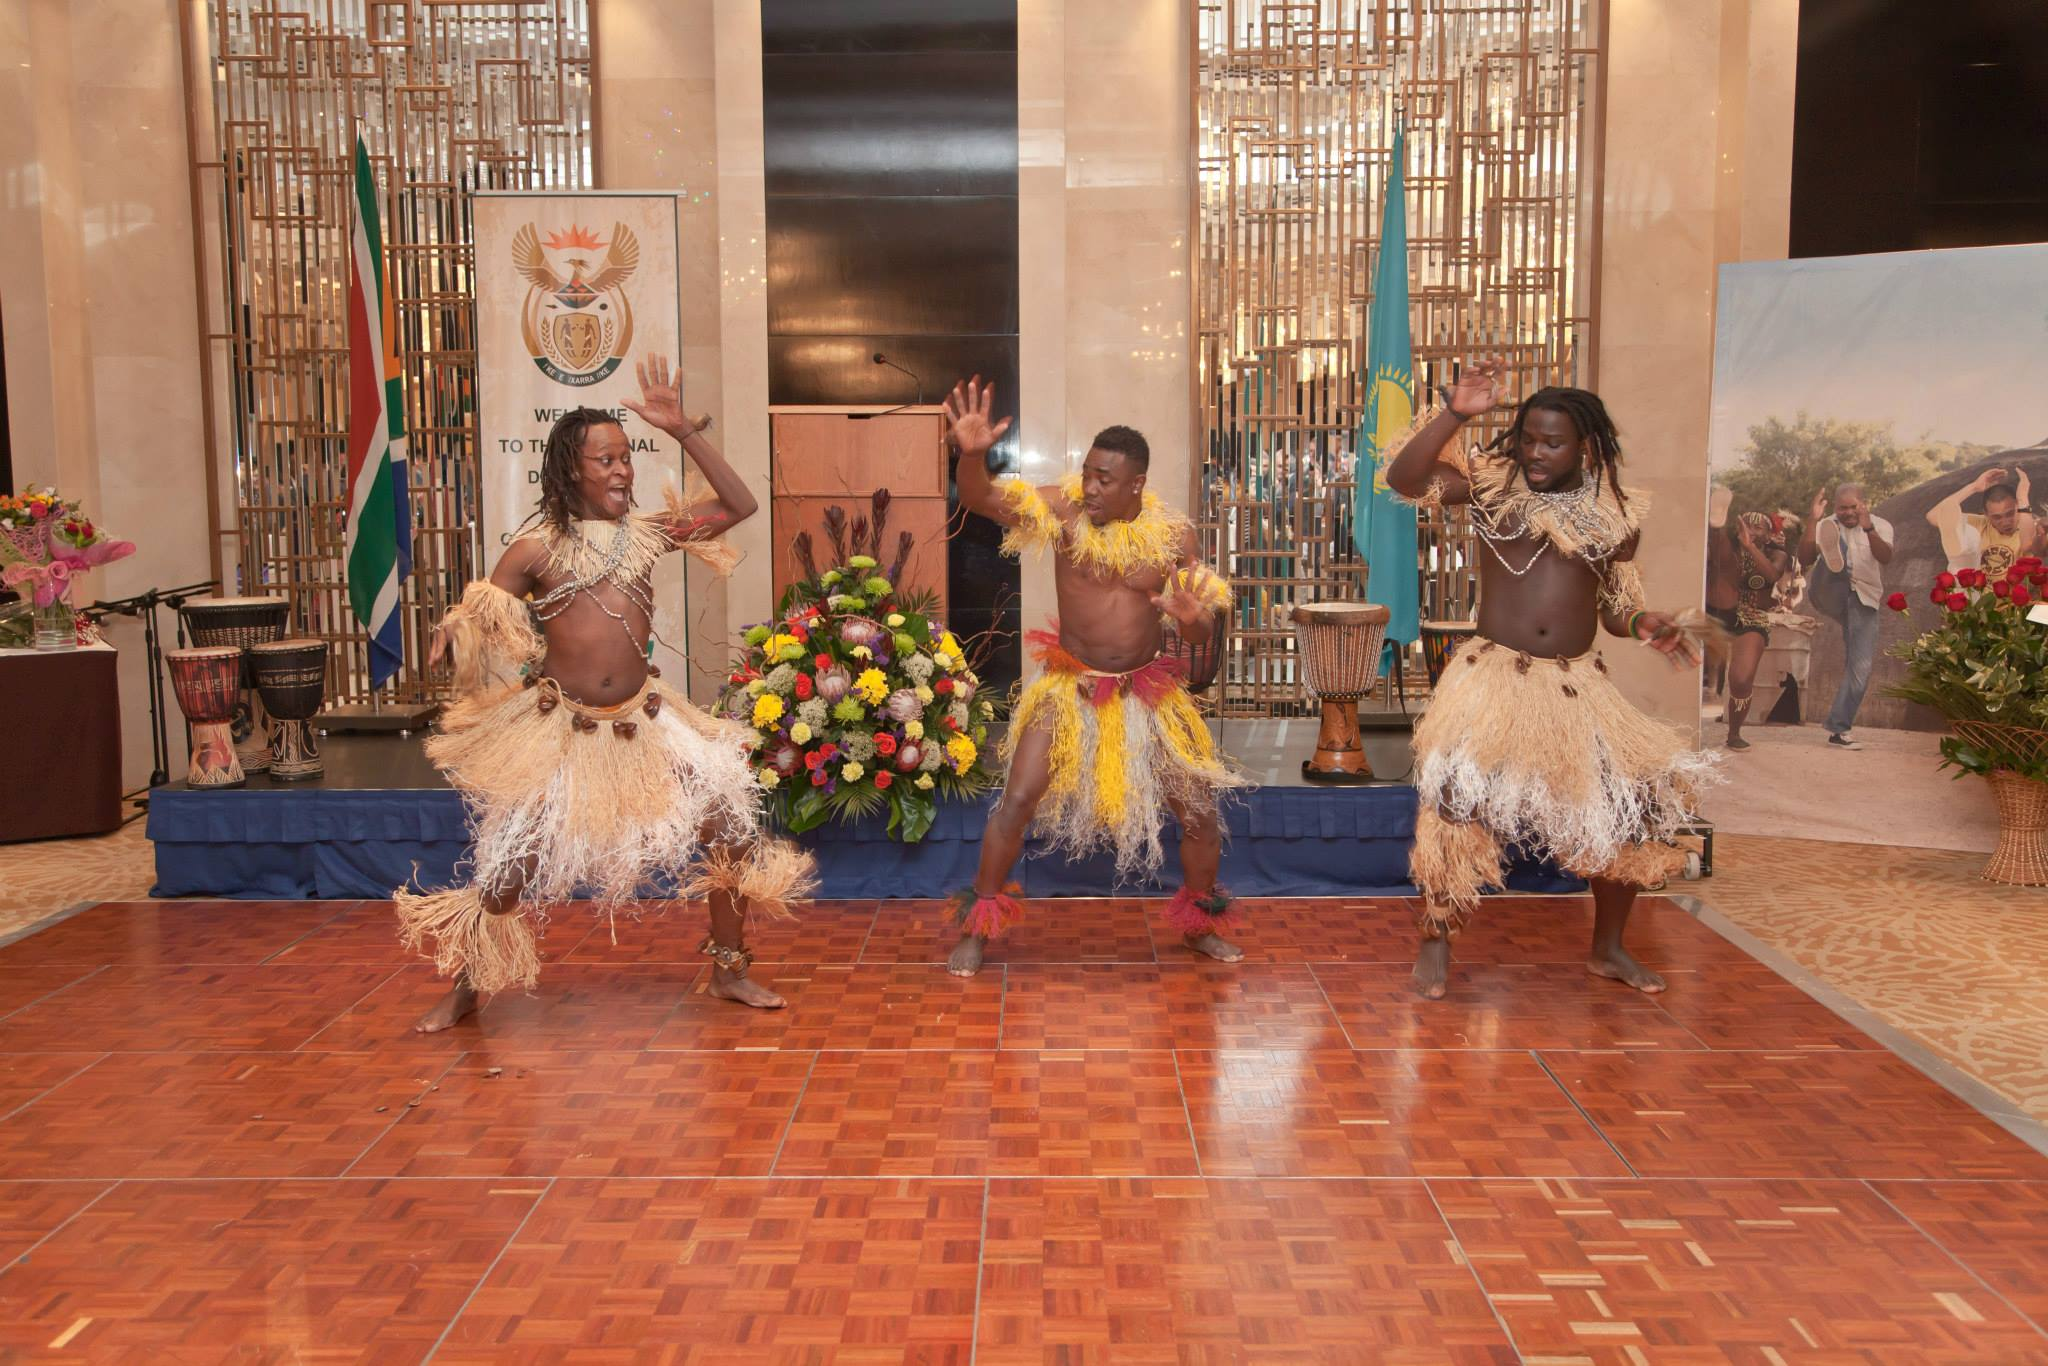 South African Embassy Celebrates Freedom Day in Astana - The